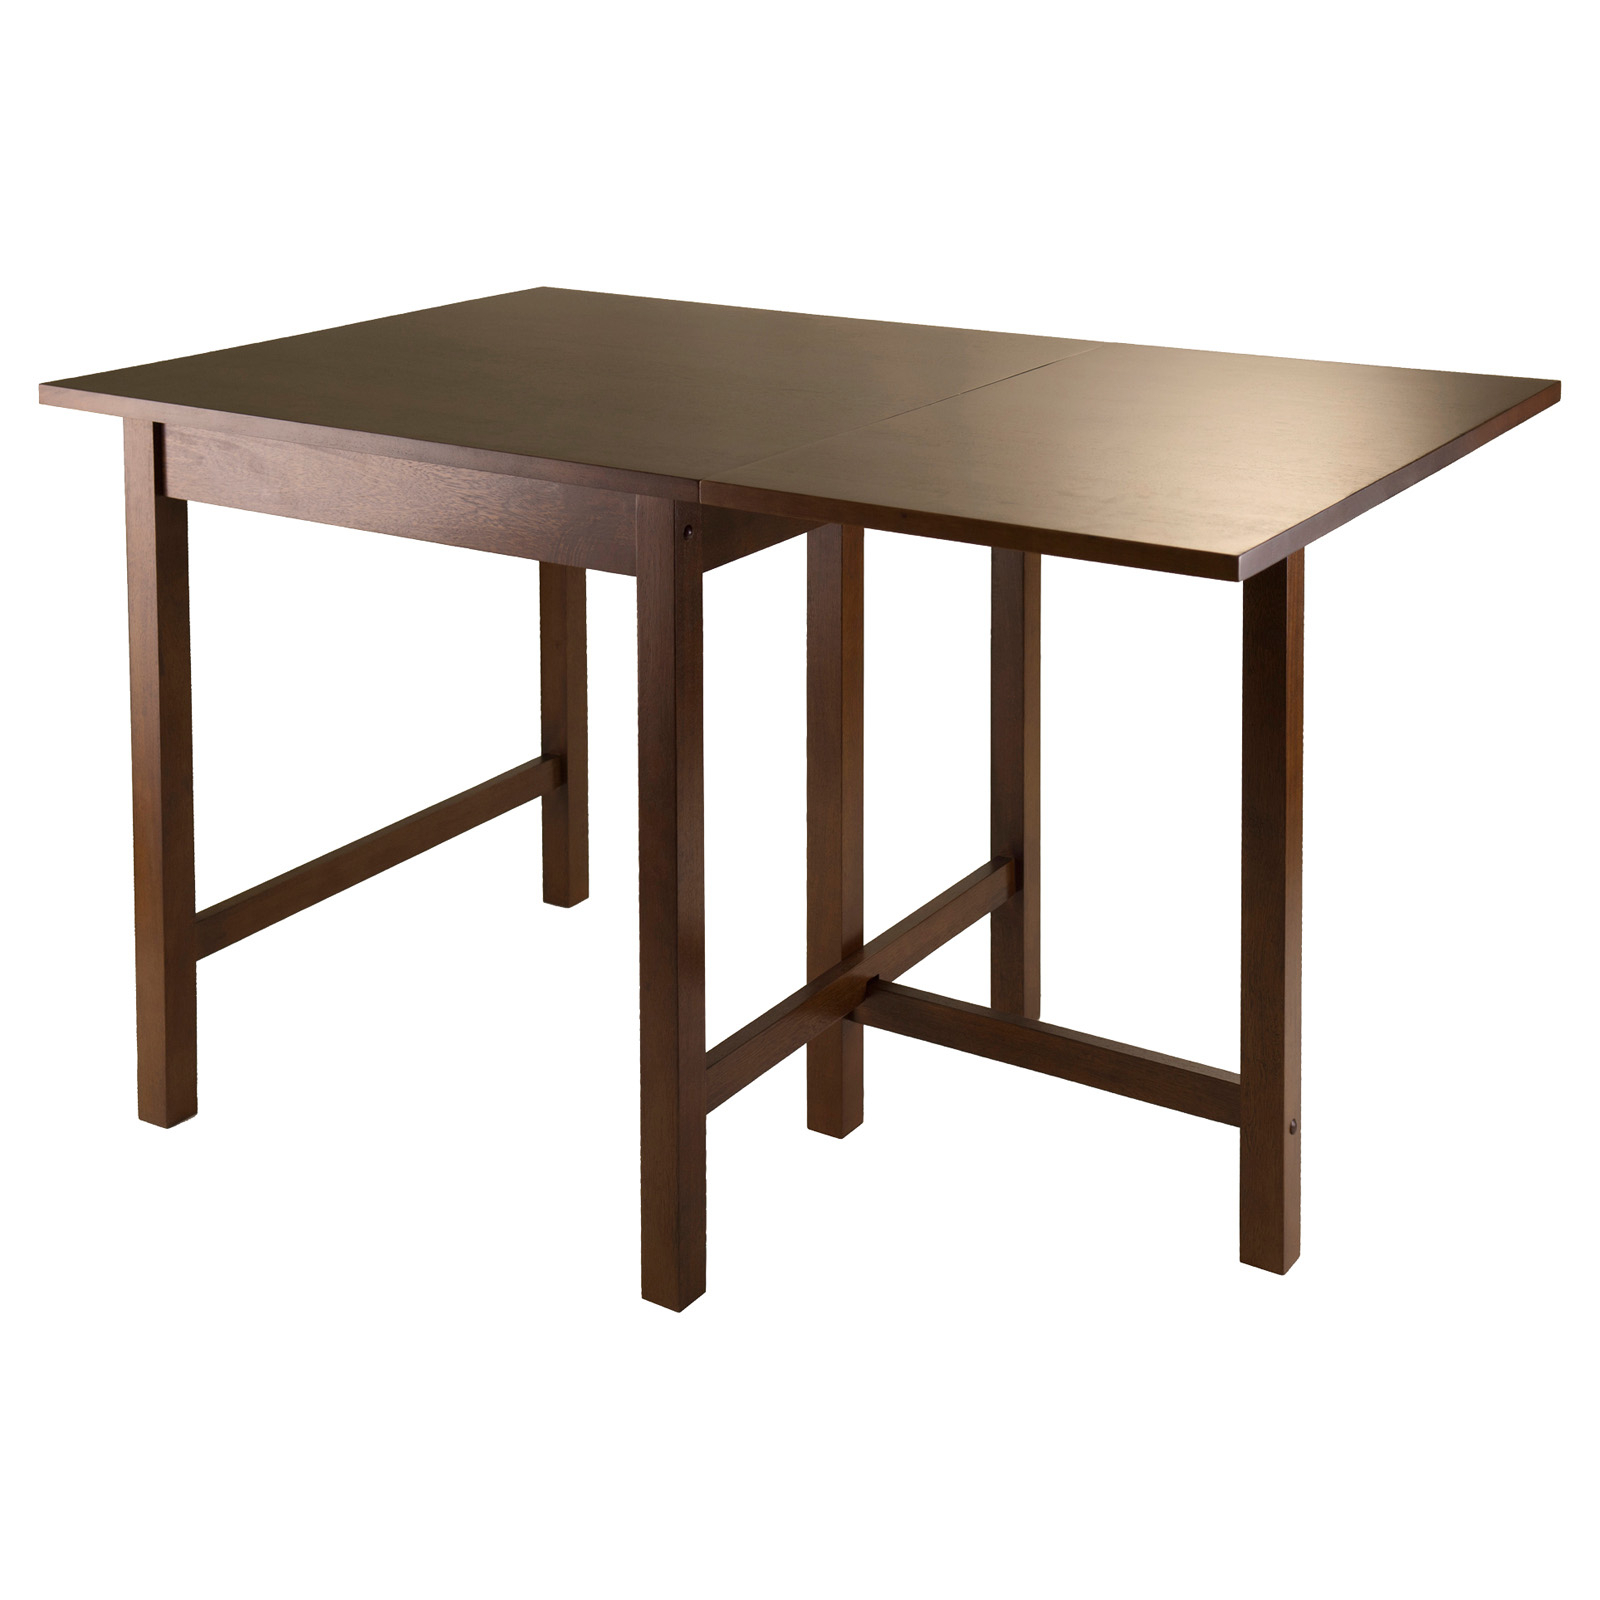 Winsome Trading Lynden Drop Leaf Dining Table – Antique In 2017 Adams Drop Leaf Trestle Dining Tables (View 7 of 15)